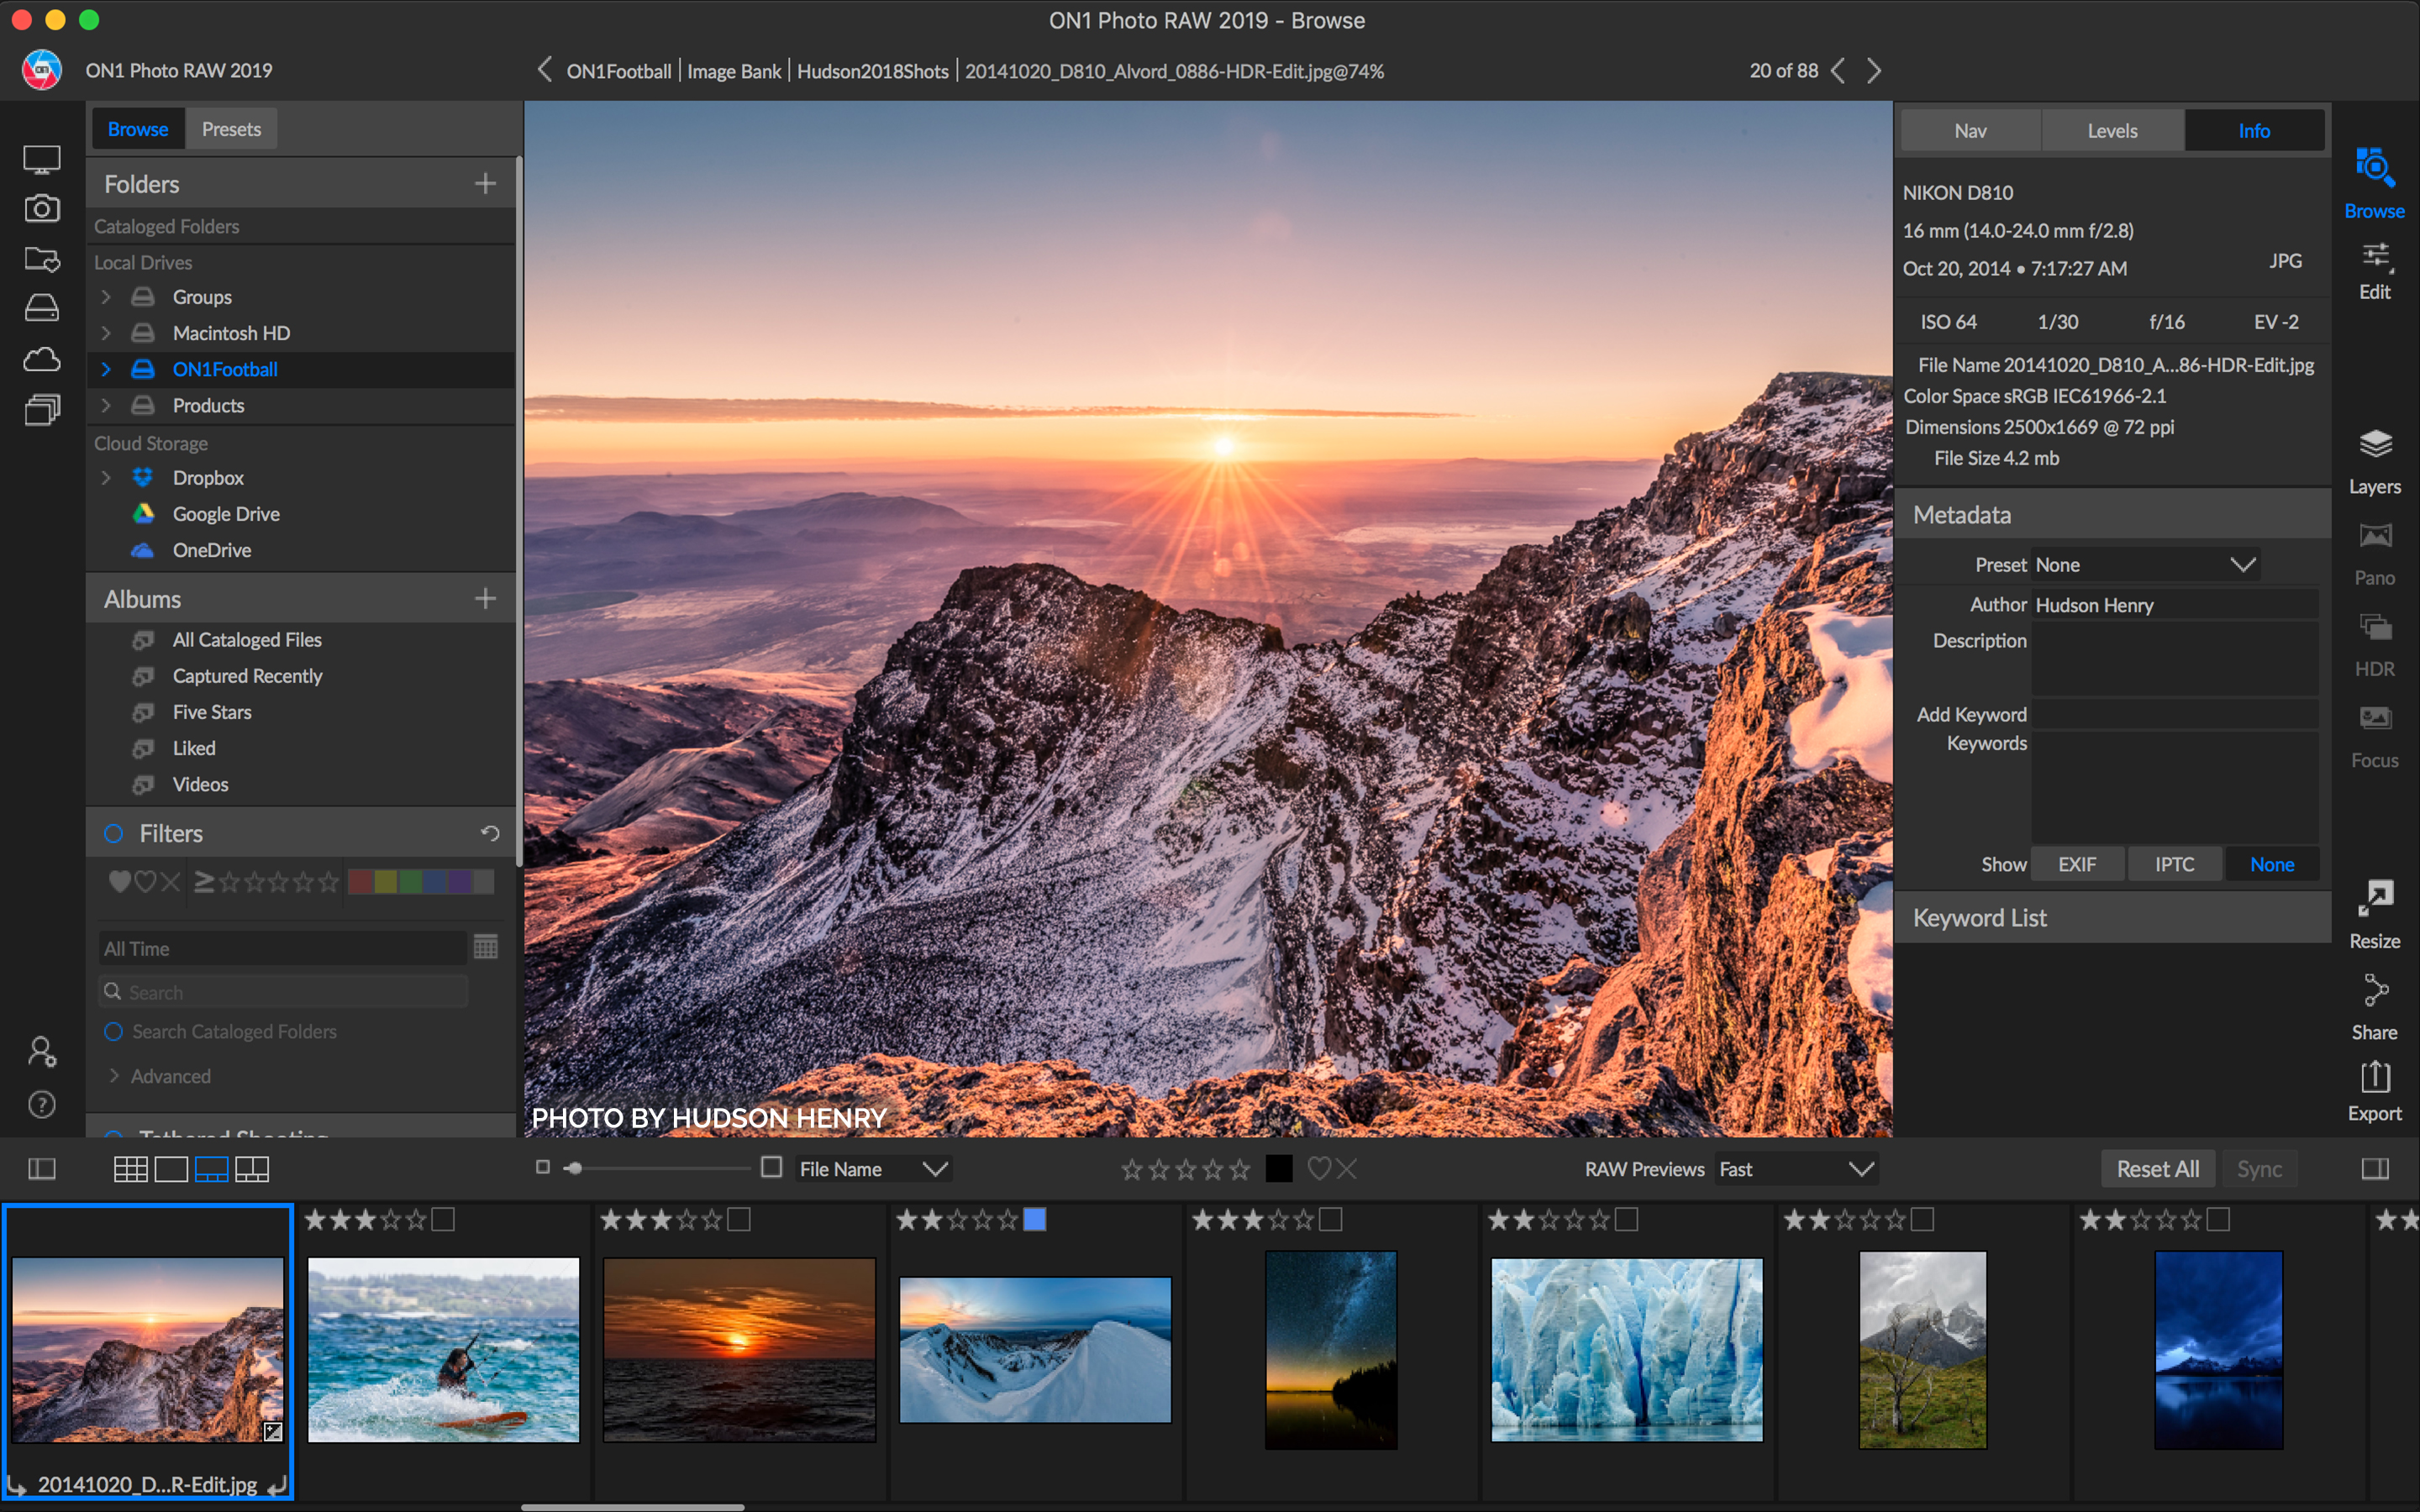 ON1 Photo RAW 2019 arrives with new UI, AI-powered Lightroom